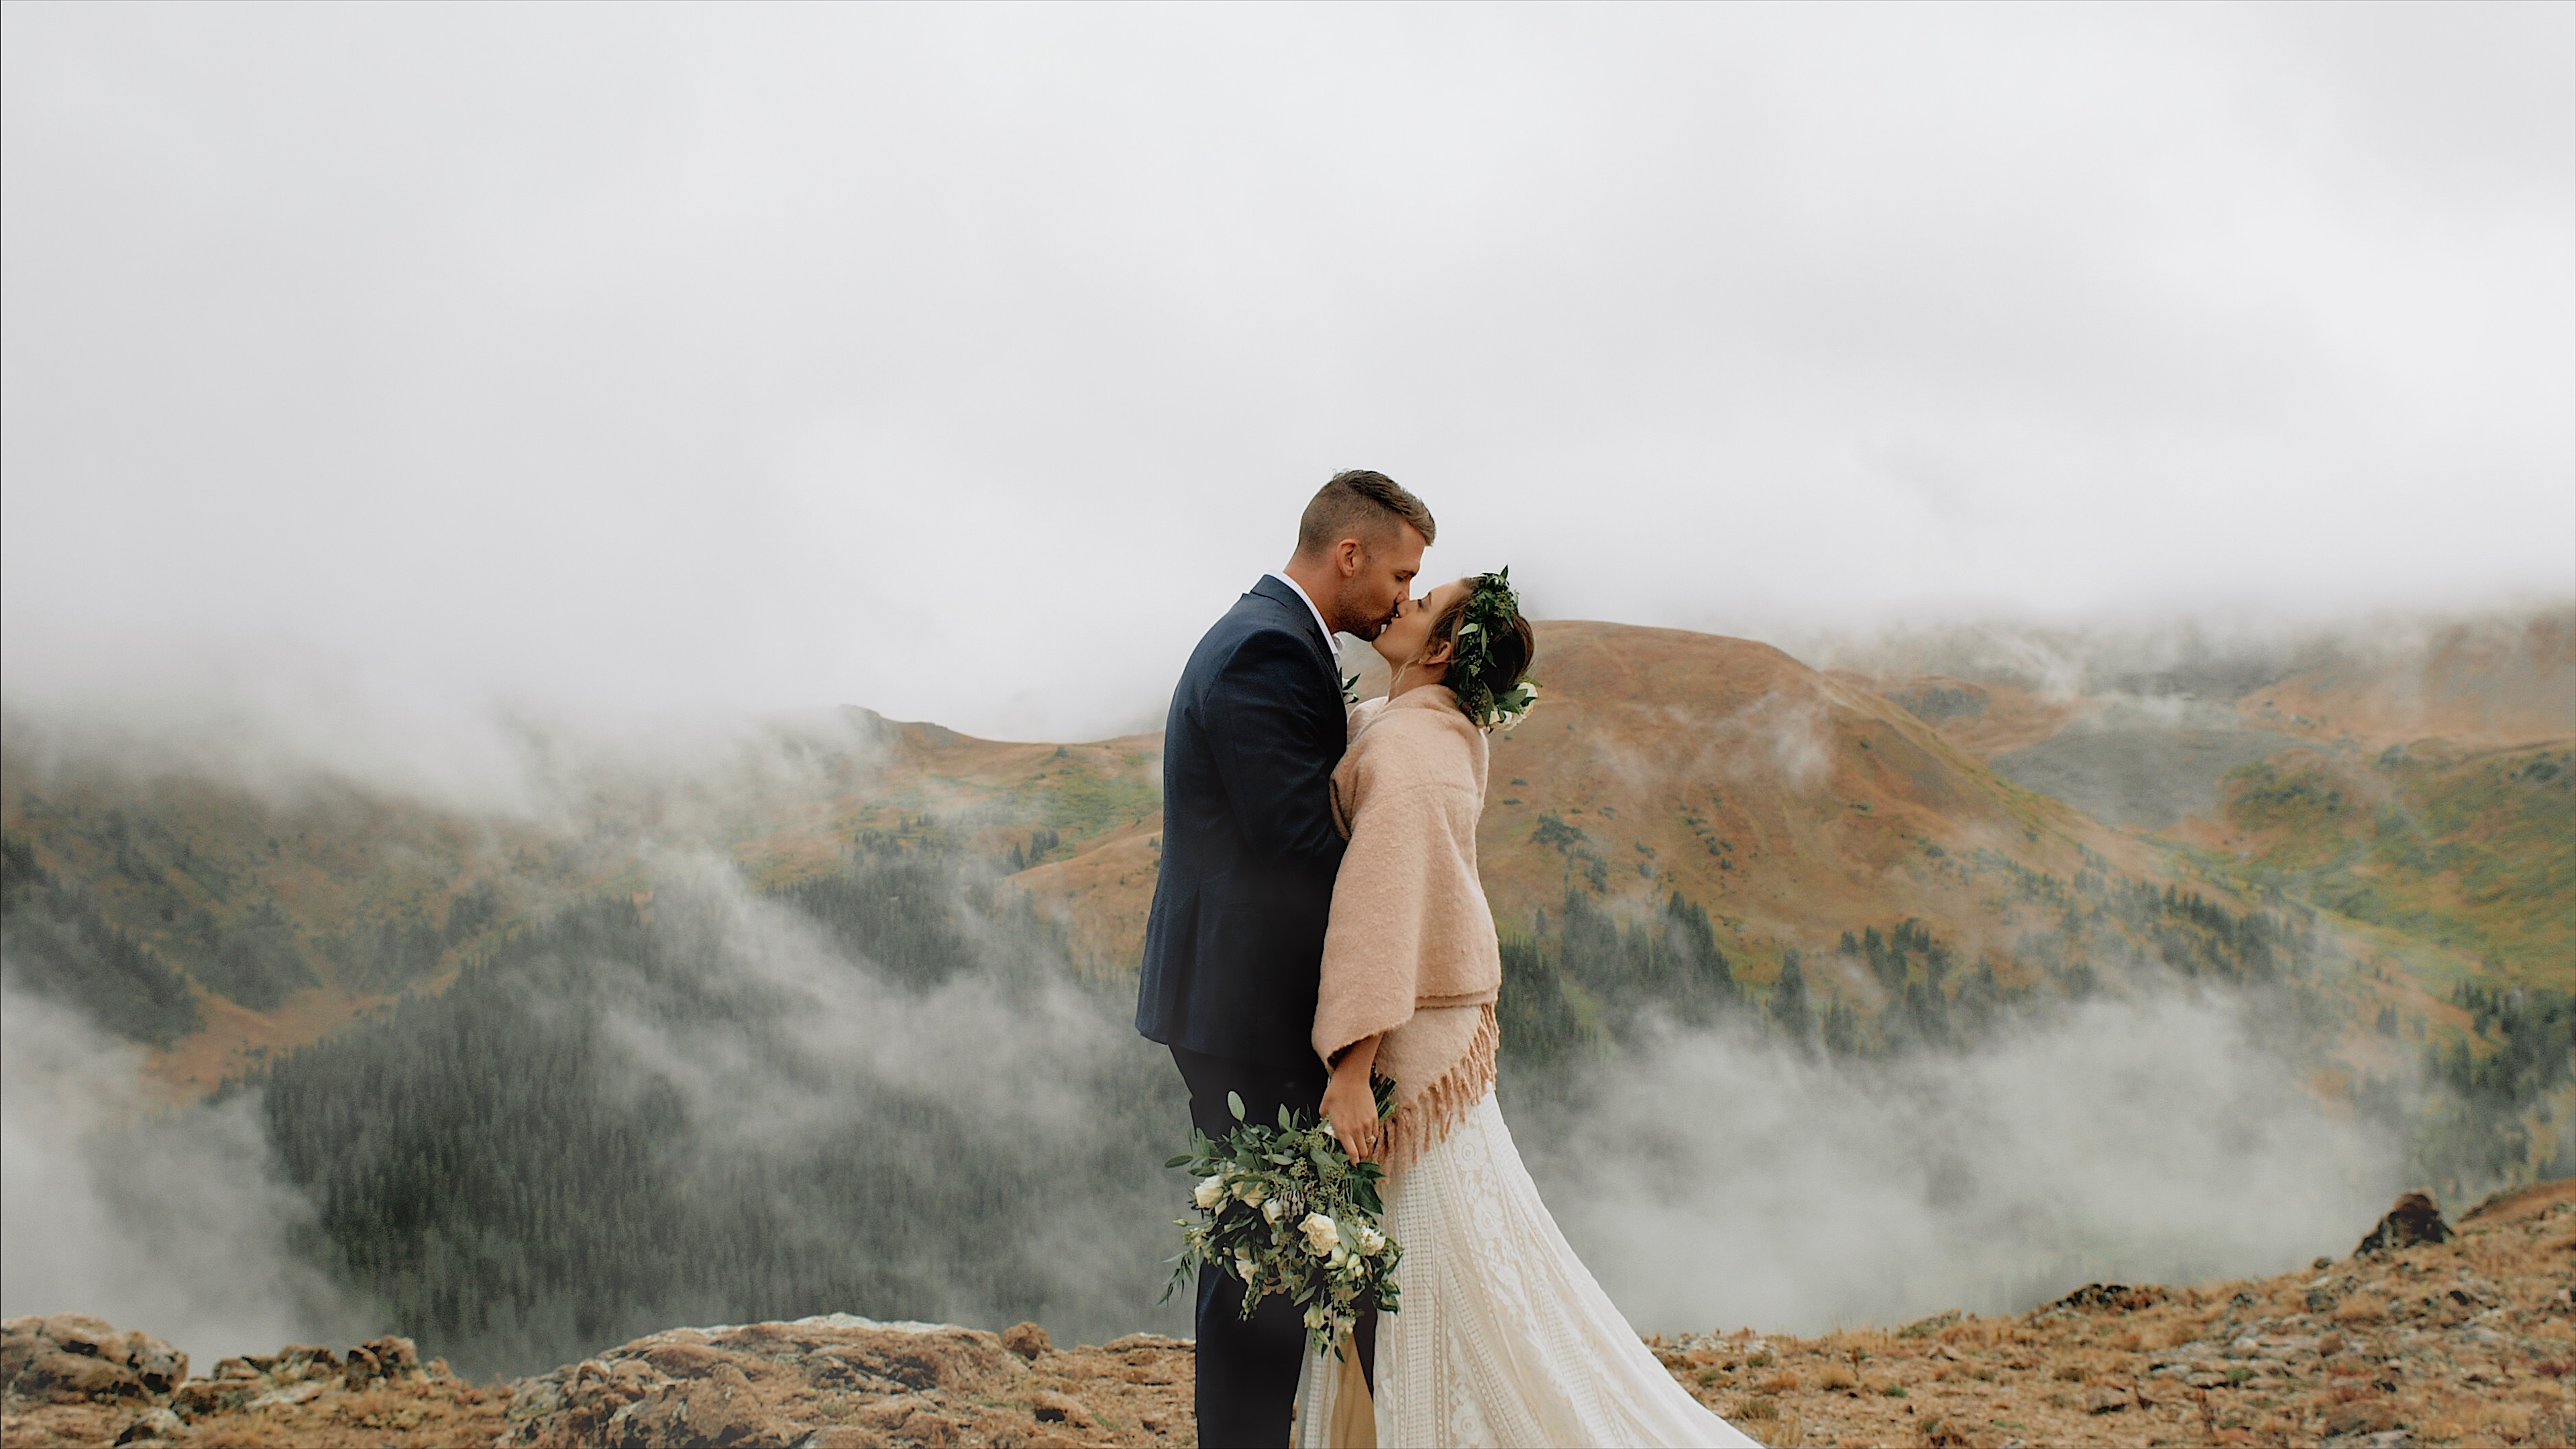 Kolby + Sam | Buena Vista, Colorado | Mt. Evans